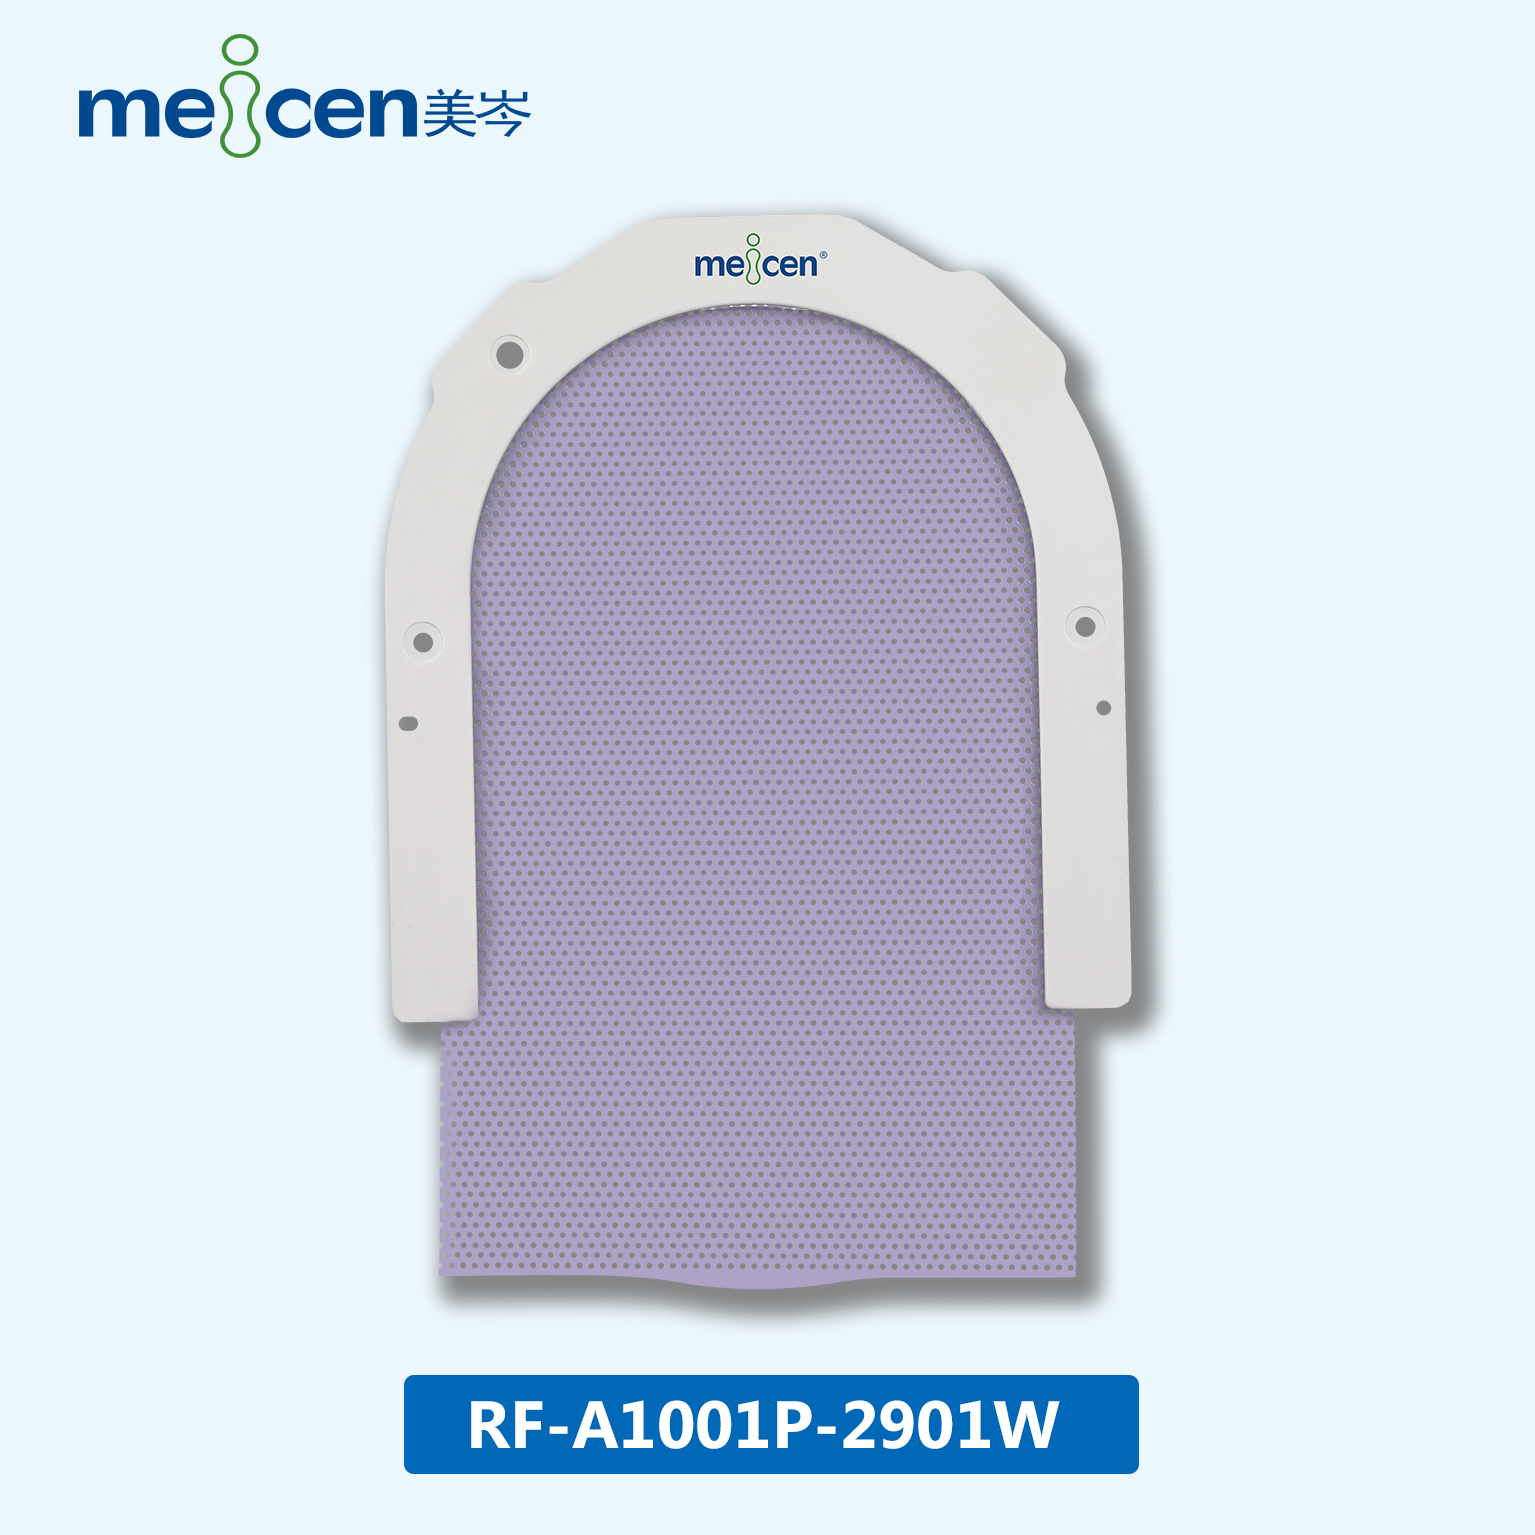 Meicen Violet U-Shaped Head Mask Lengthen 9cm, thermoplastic mask for radiotherapy